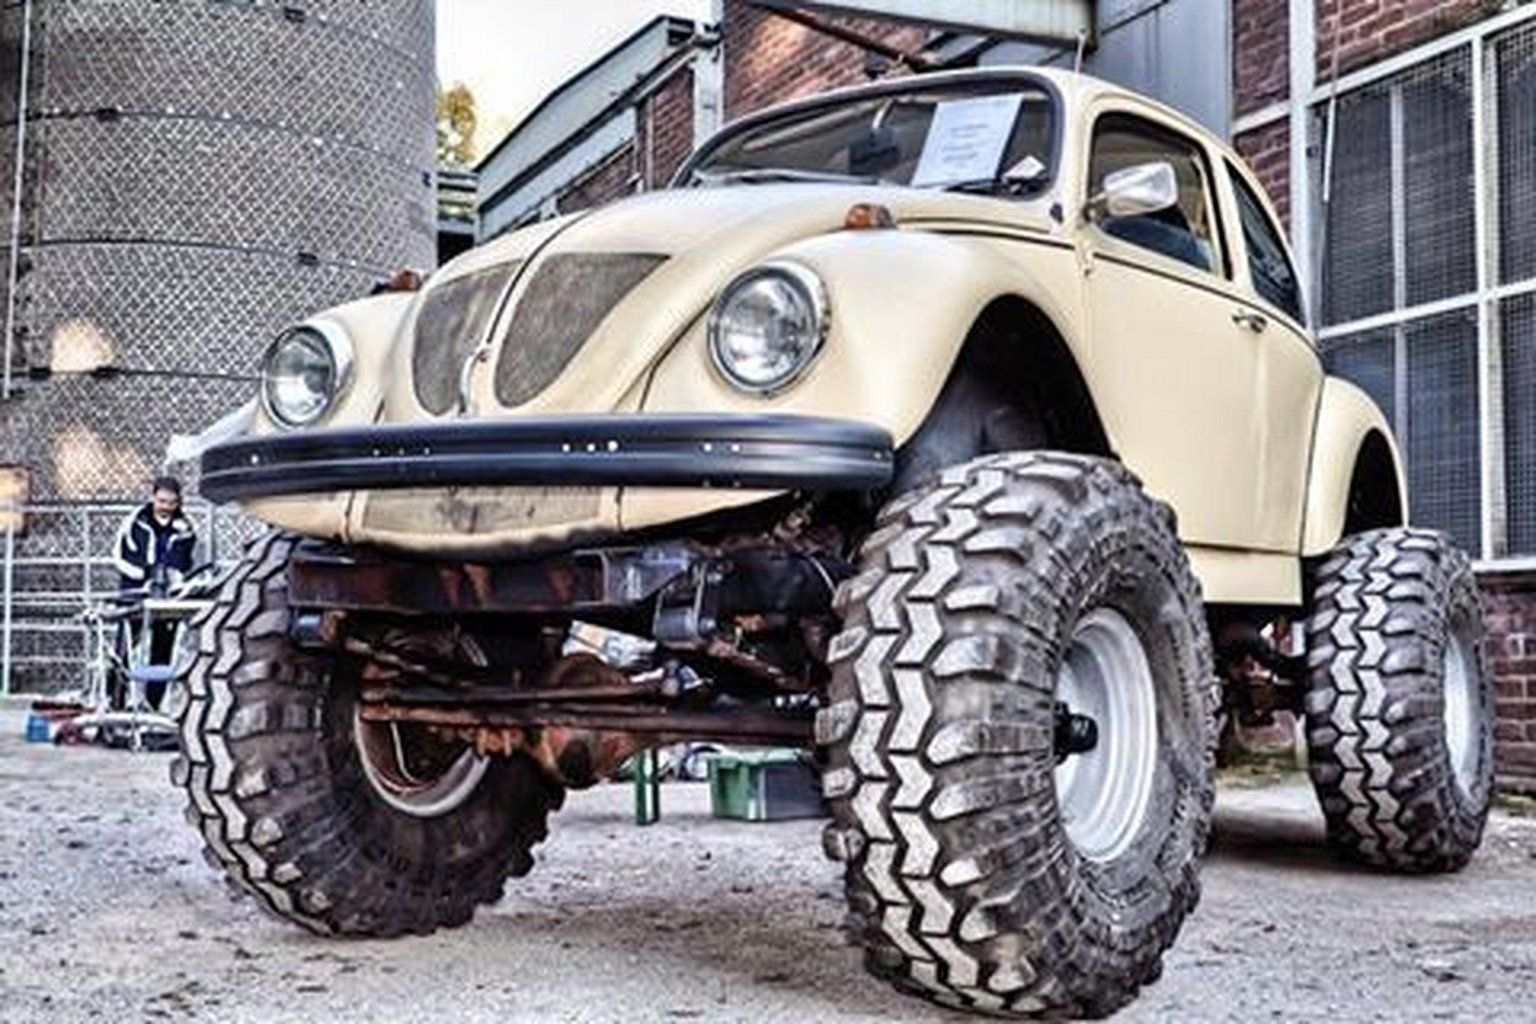 Vw Thing Offroad Costum Trending Https Www Mobmasker Com Vw Thing Offroad Costum Trending Volkswagen Volkswagen Beetle Classic Volkswagen Beetle